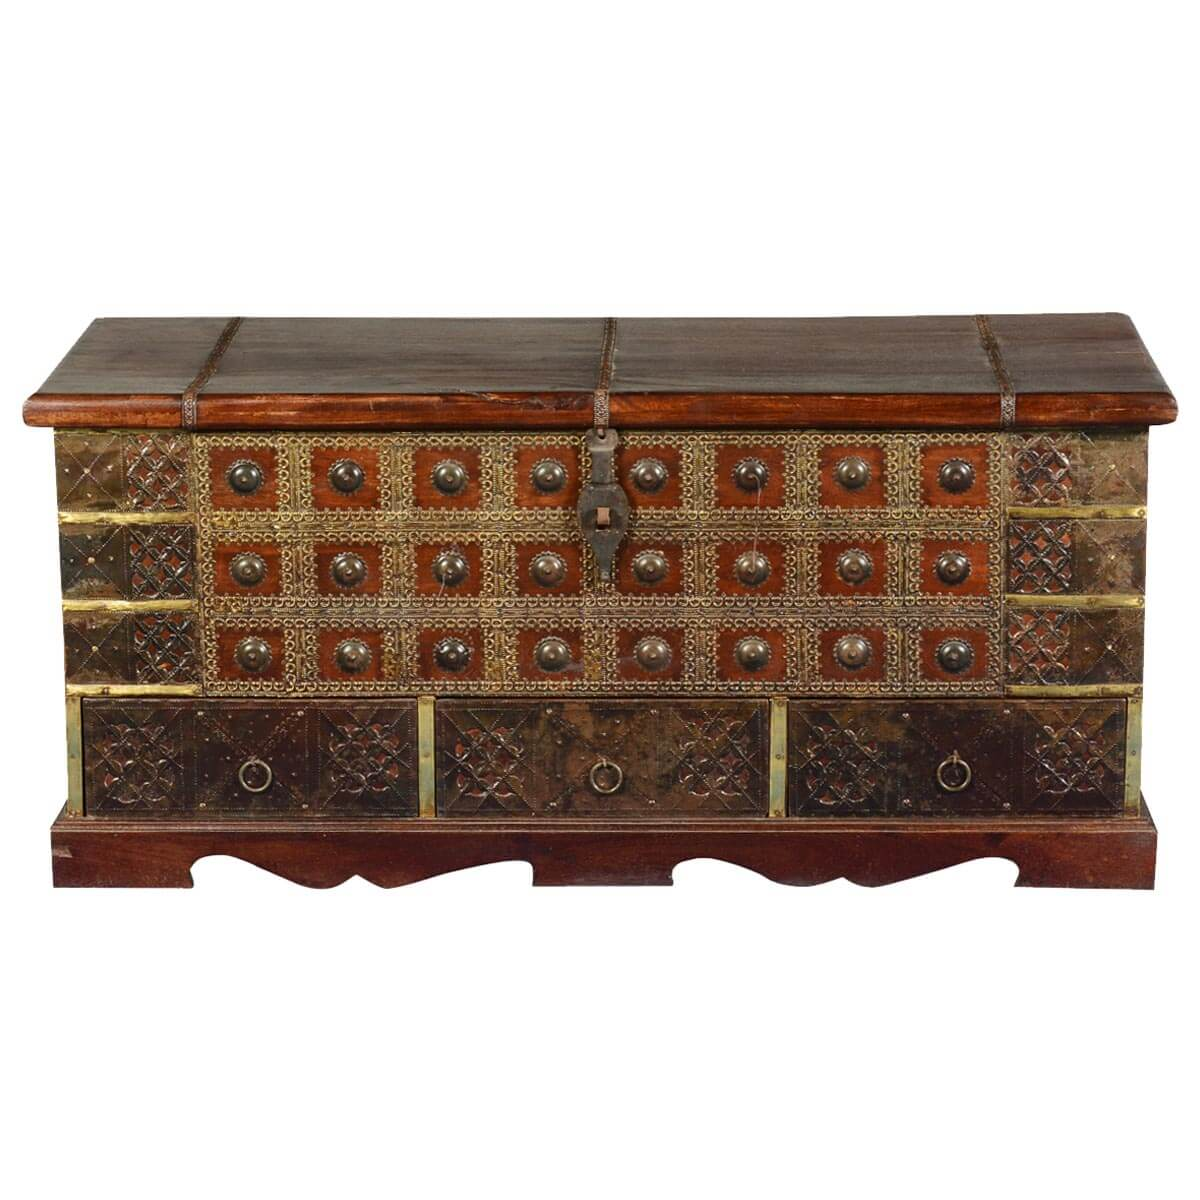 Coffee Table Chest Drawers: Tudor Treasures Mango Wood & Brass Coffee Table Chest W